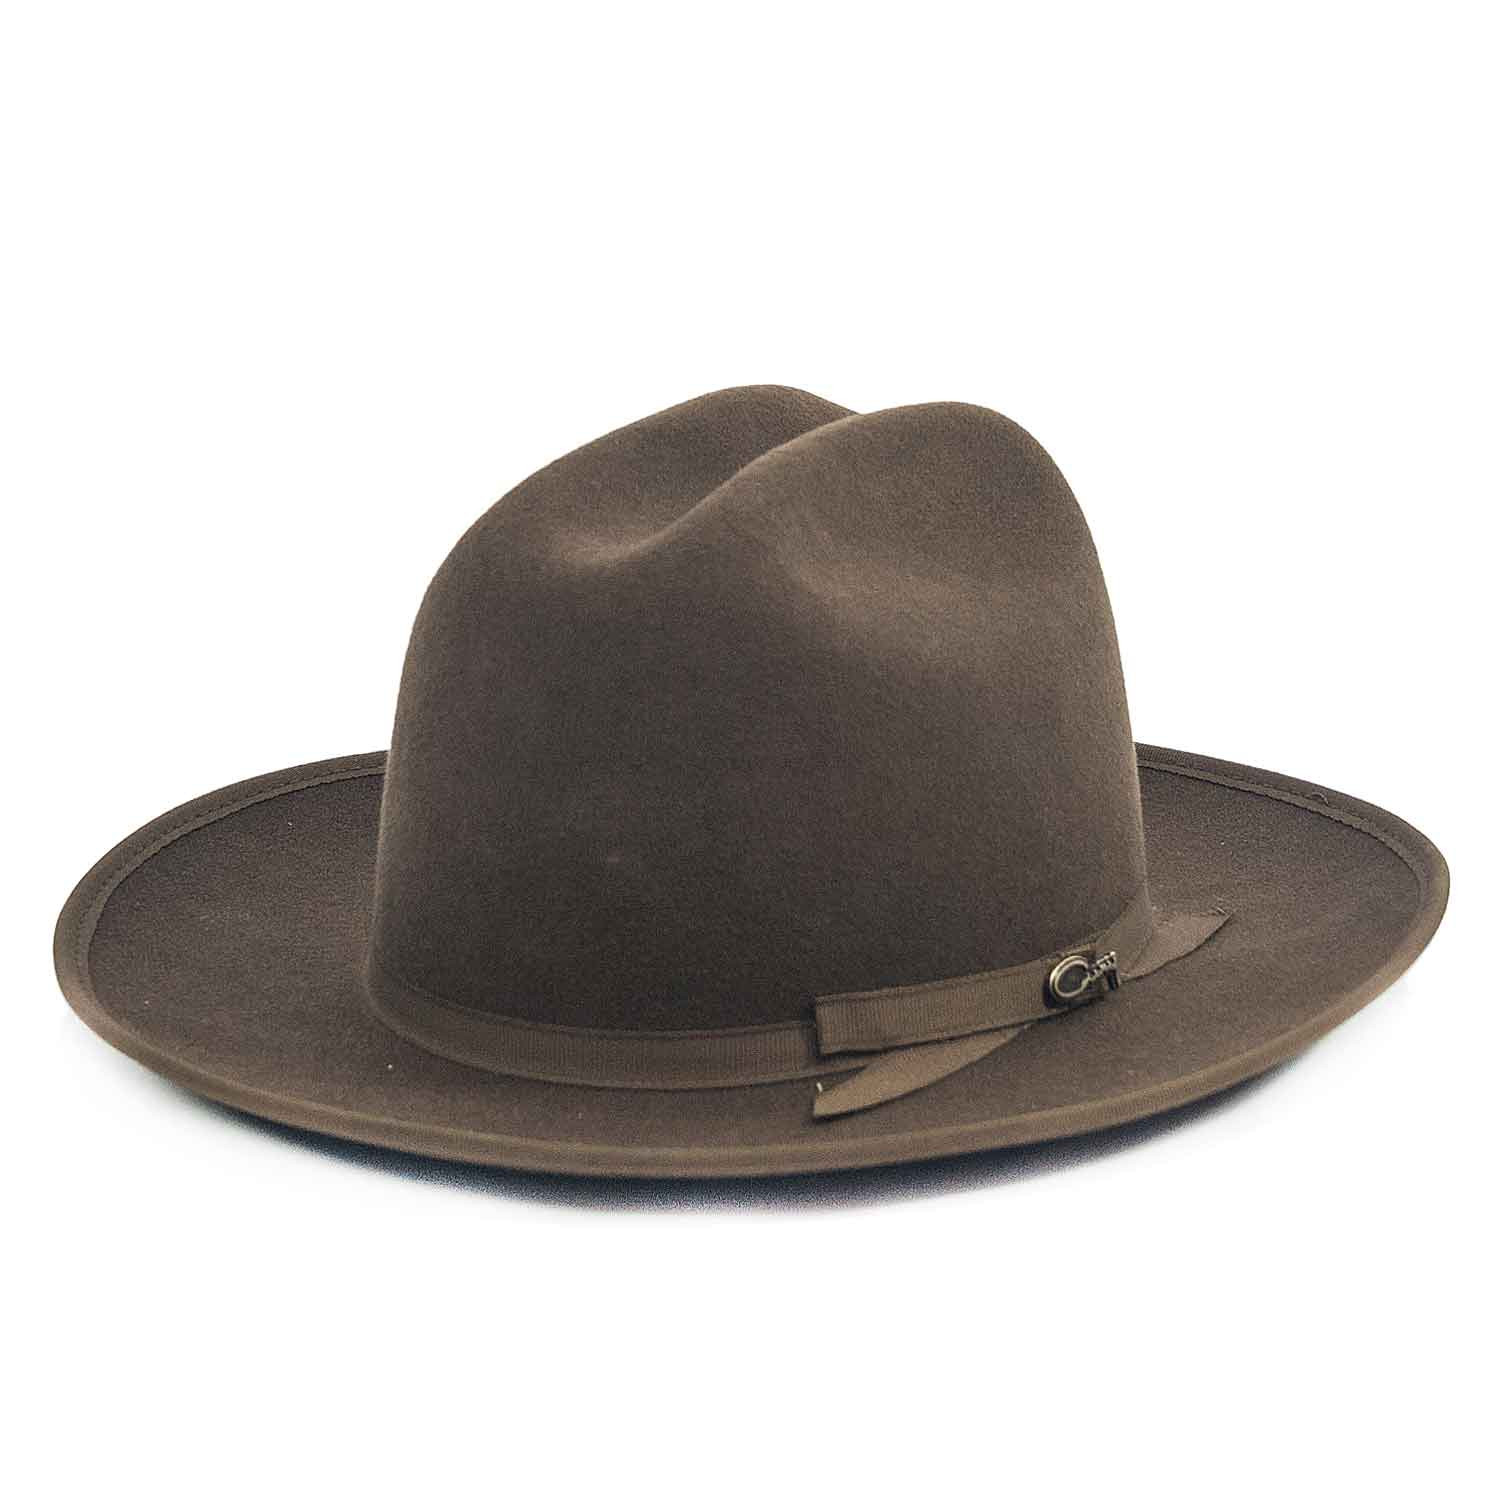 Chapeu Masculino Cury Open Road Cafe